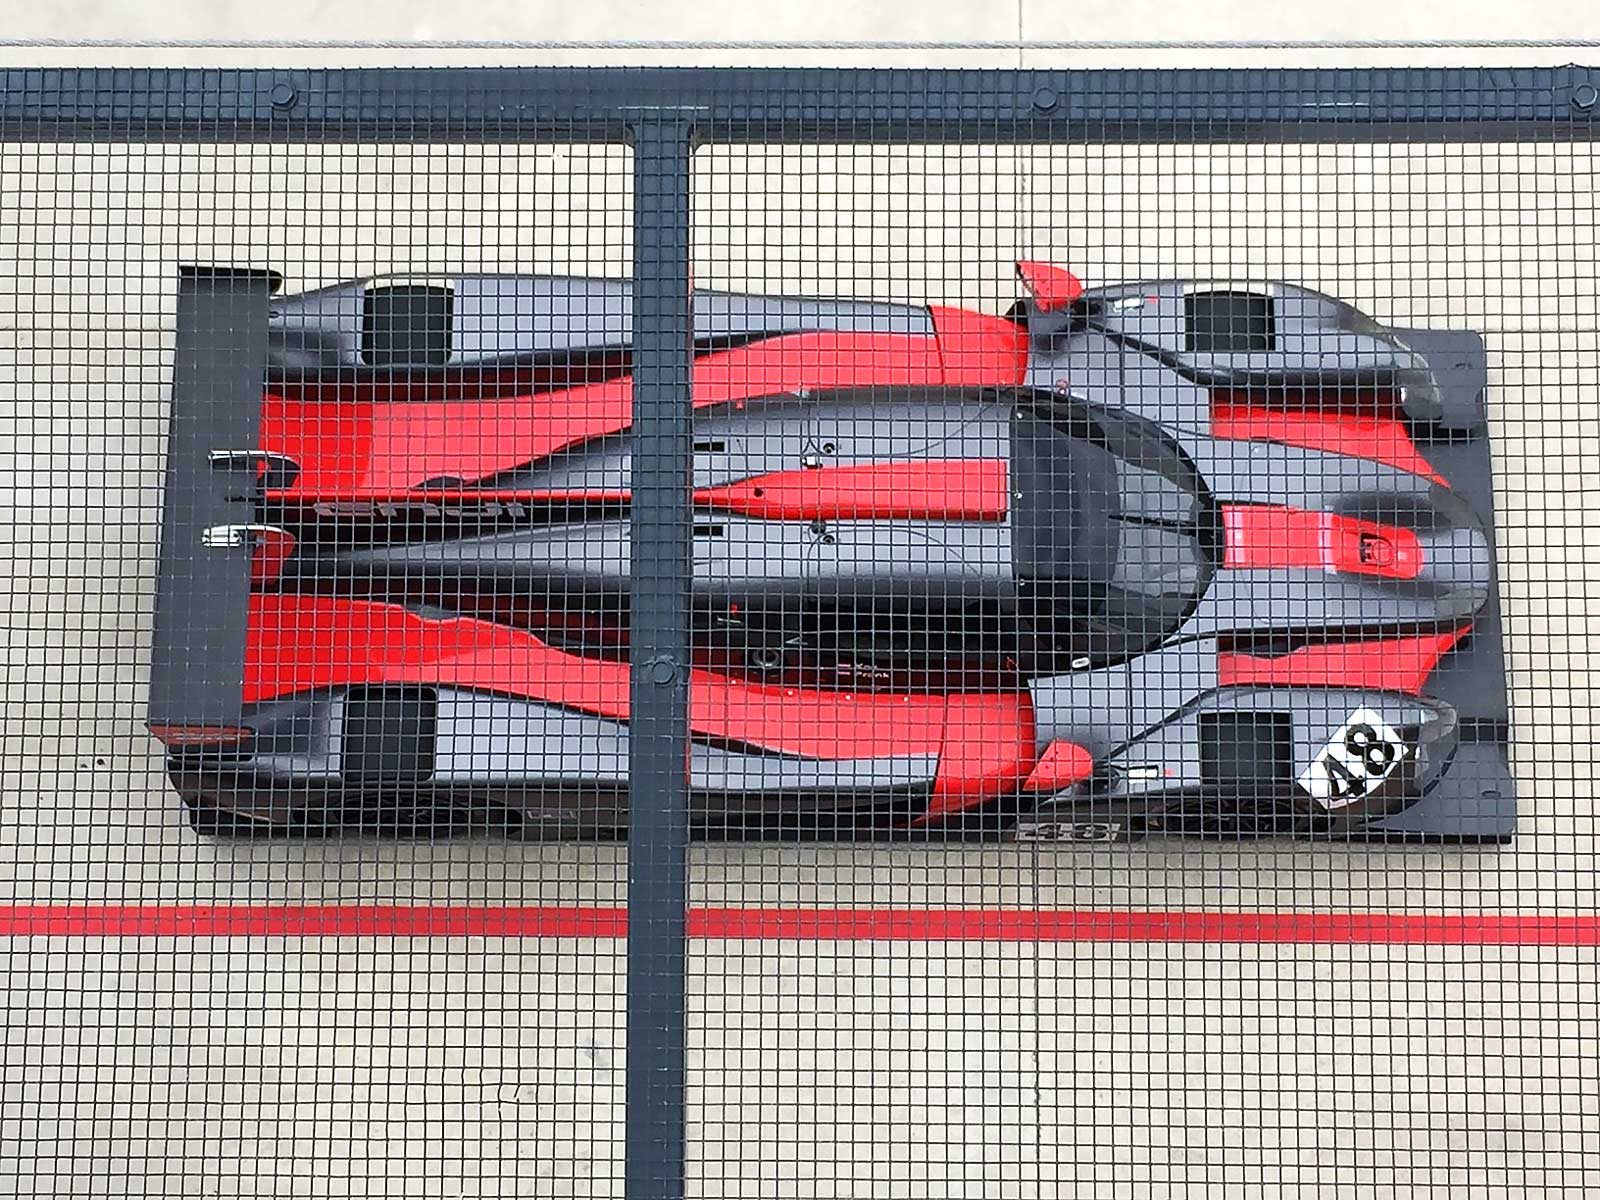 isert-motorsport-koxracing-test-navarra-2016-03